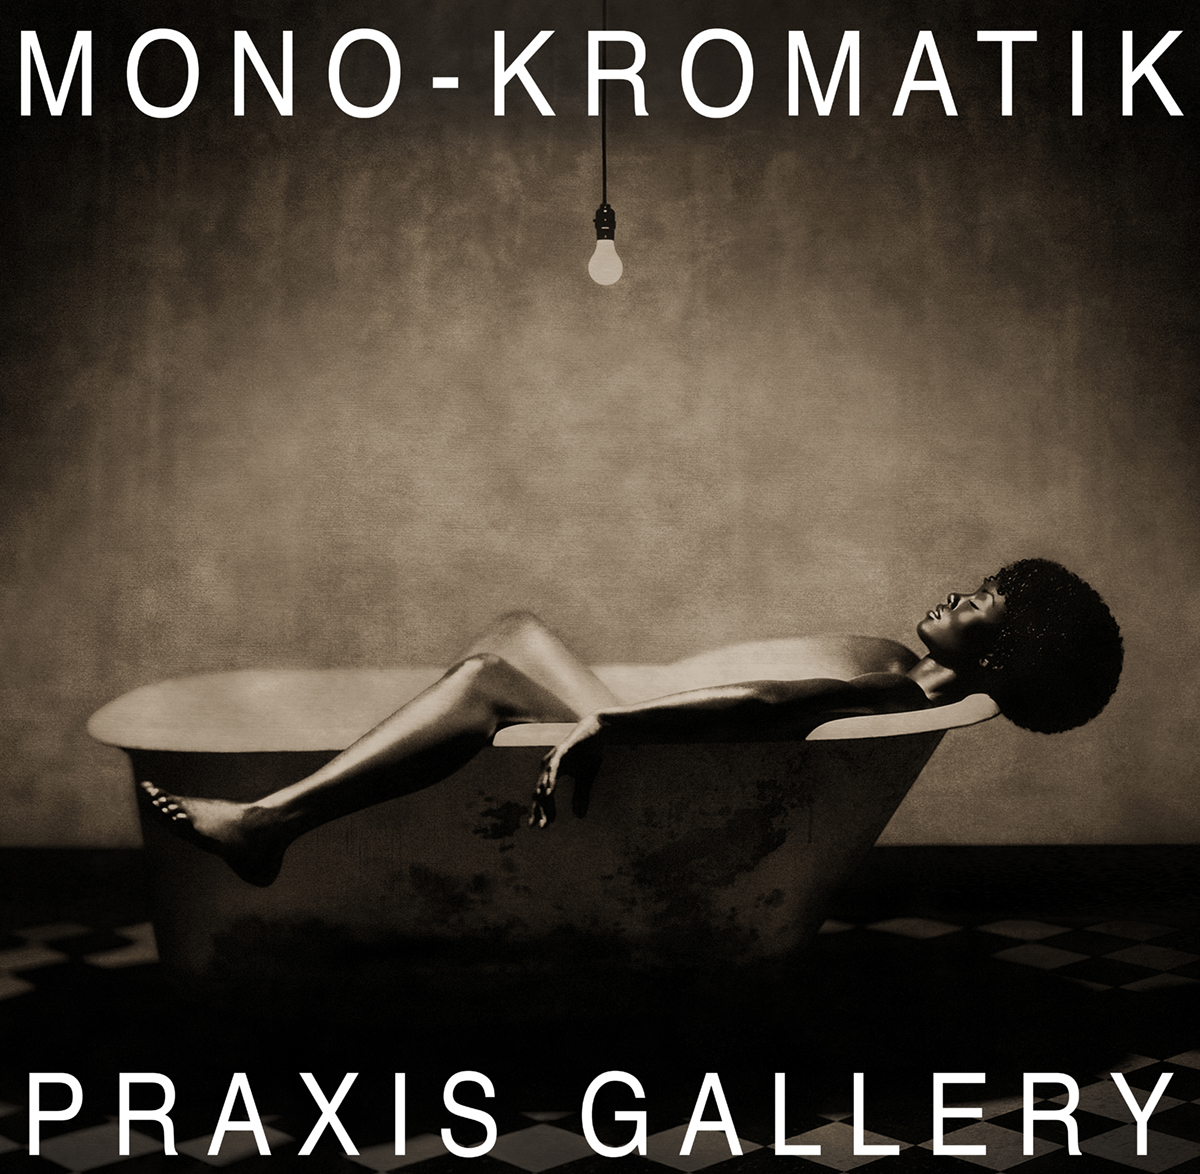 Mono – Kromatik • Call for Entries • Praxis Gallery - logo